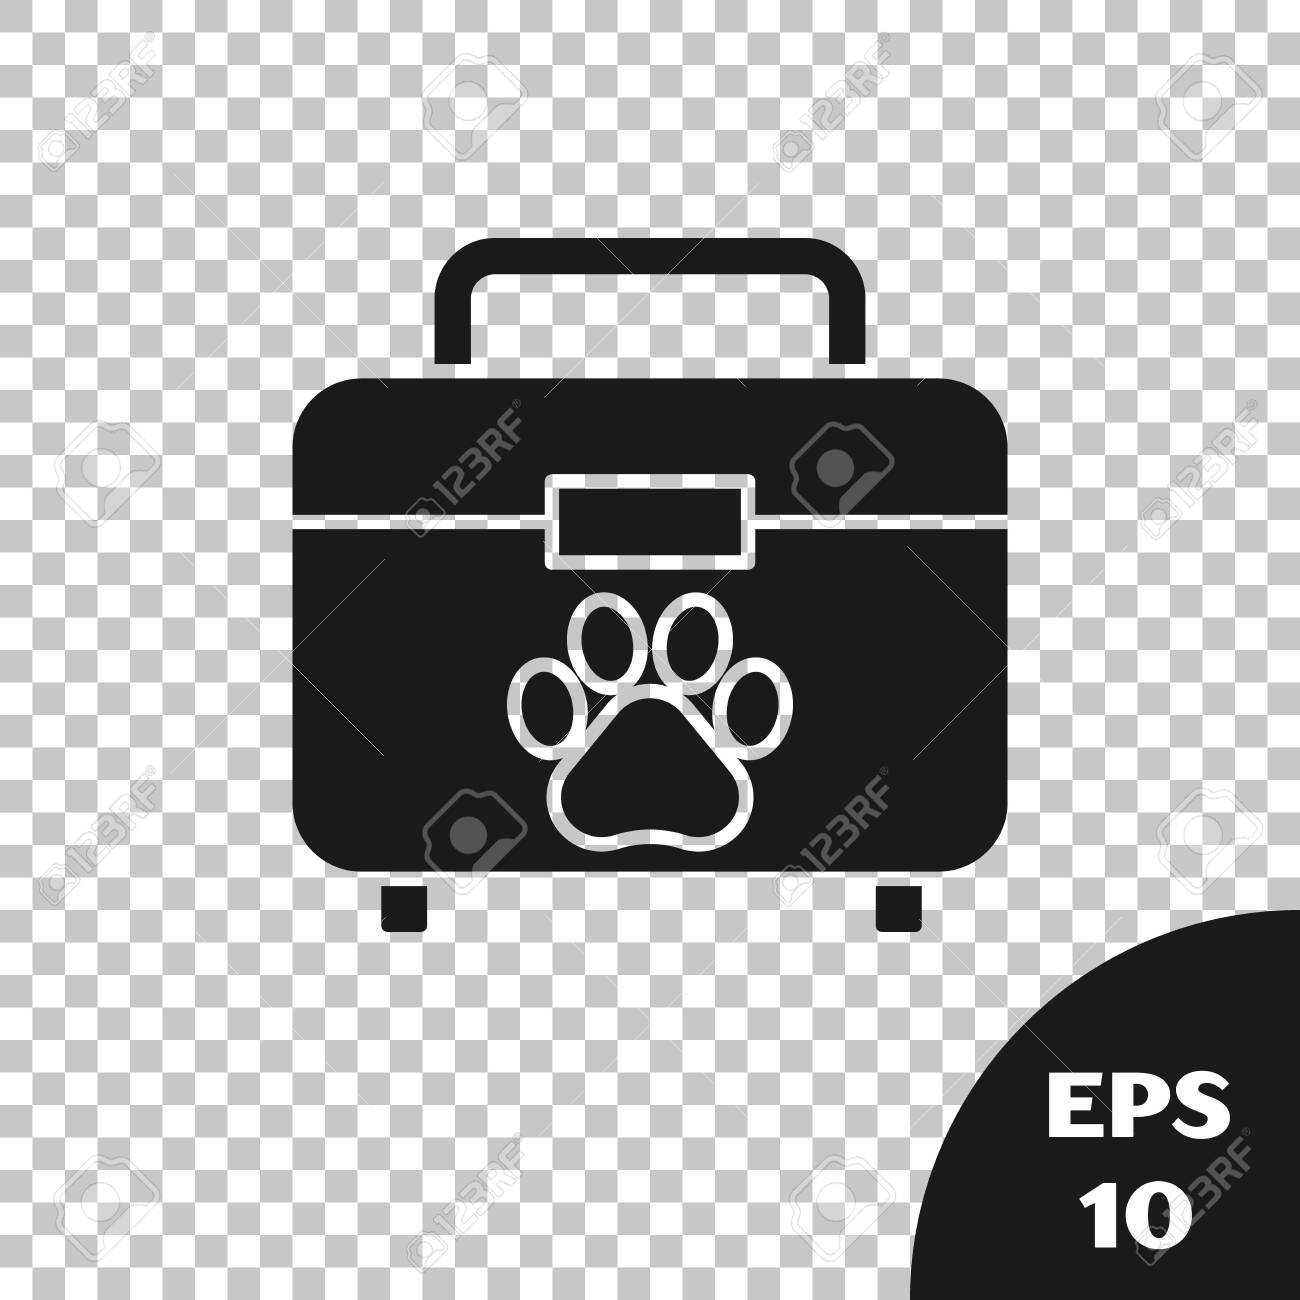 Black Pet first aid kit icon isolated on transparent background